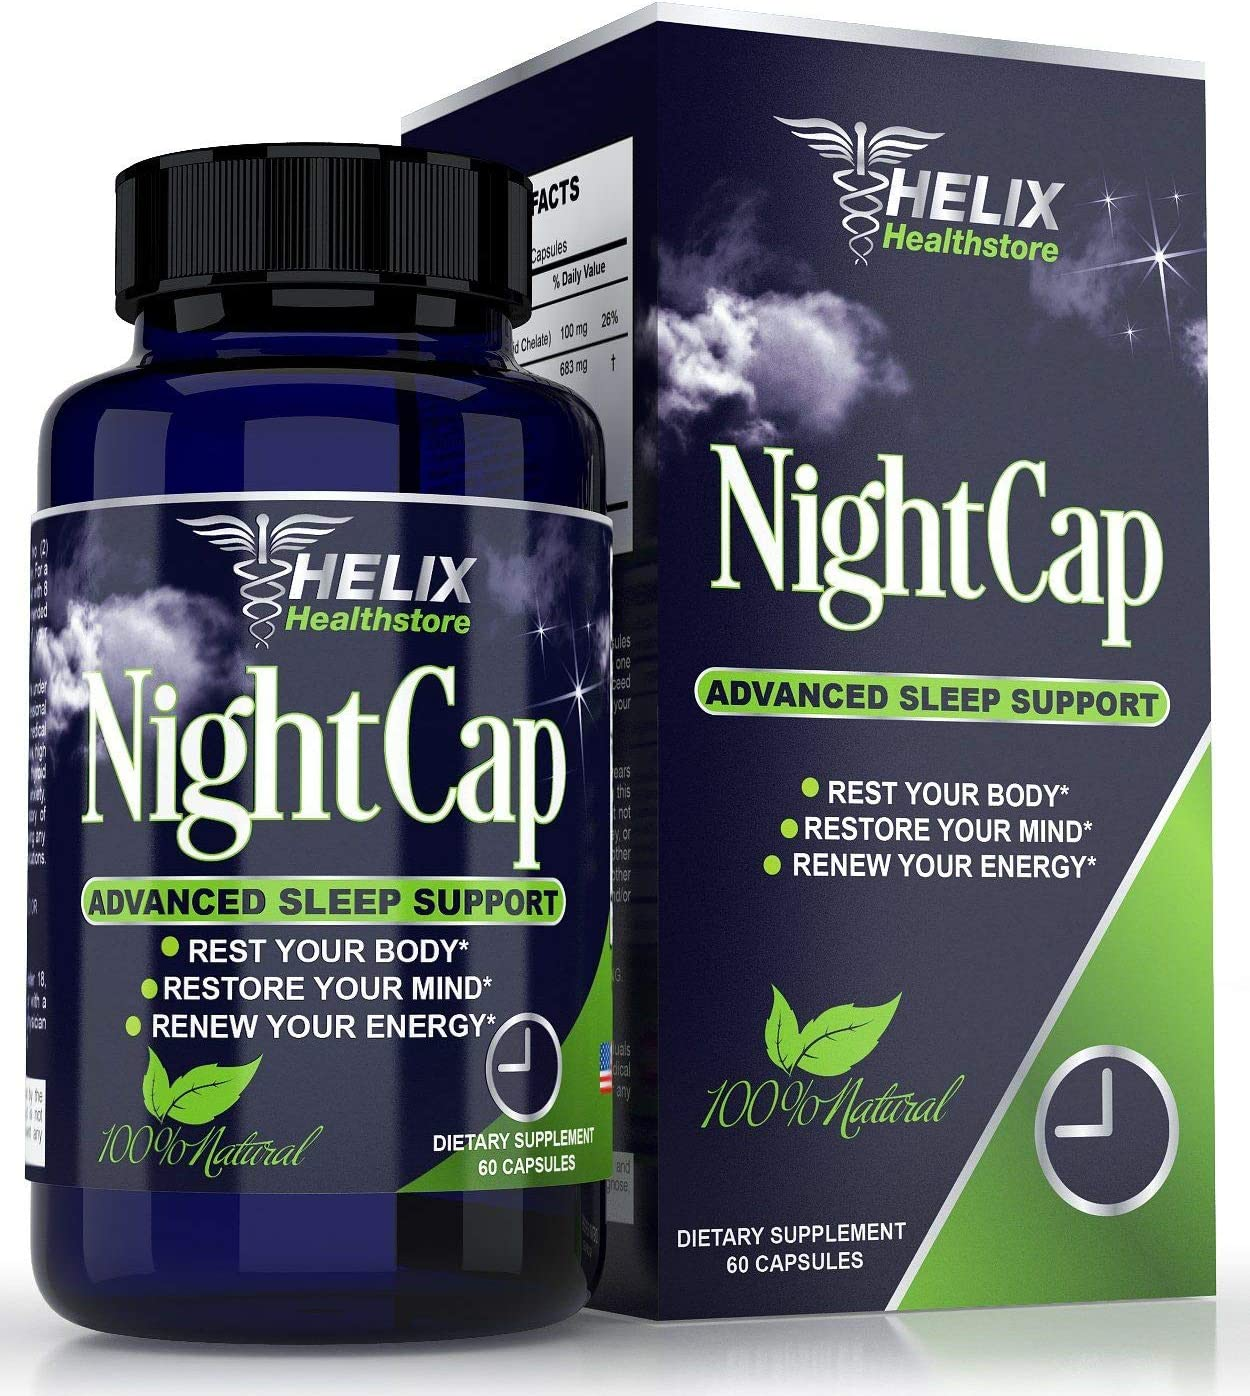 Natural Sleep Aid for Adults Extract Opening large 4 years warranty release sale Root Valerian Melatoni with